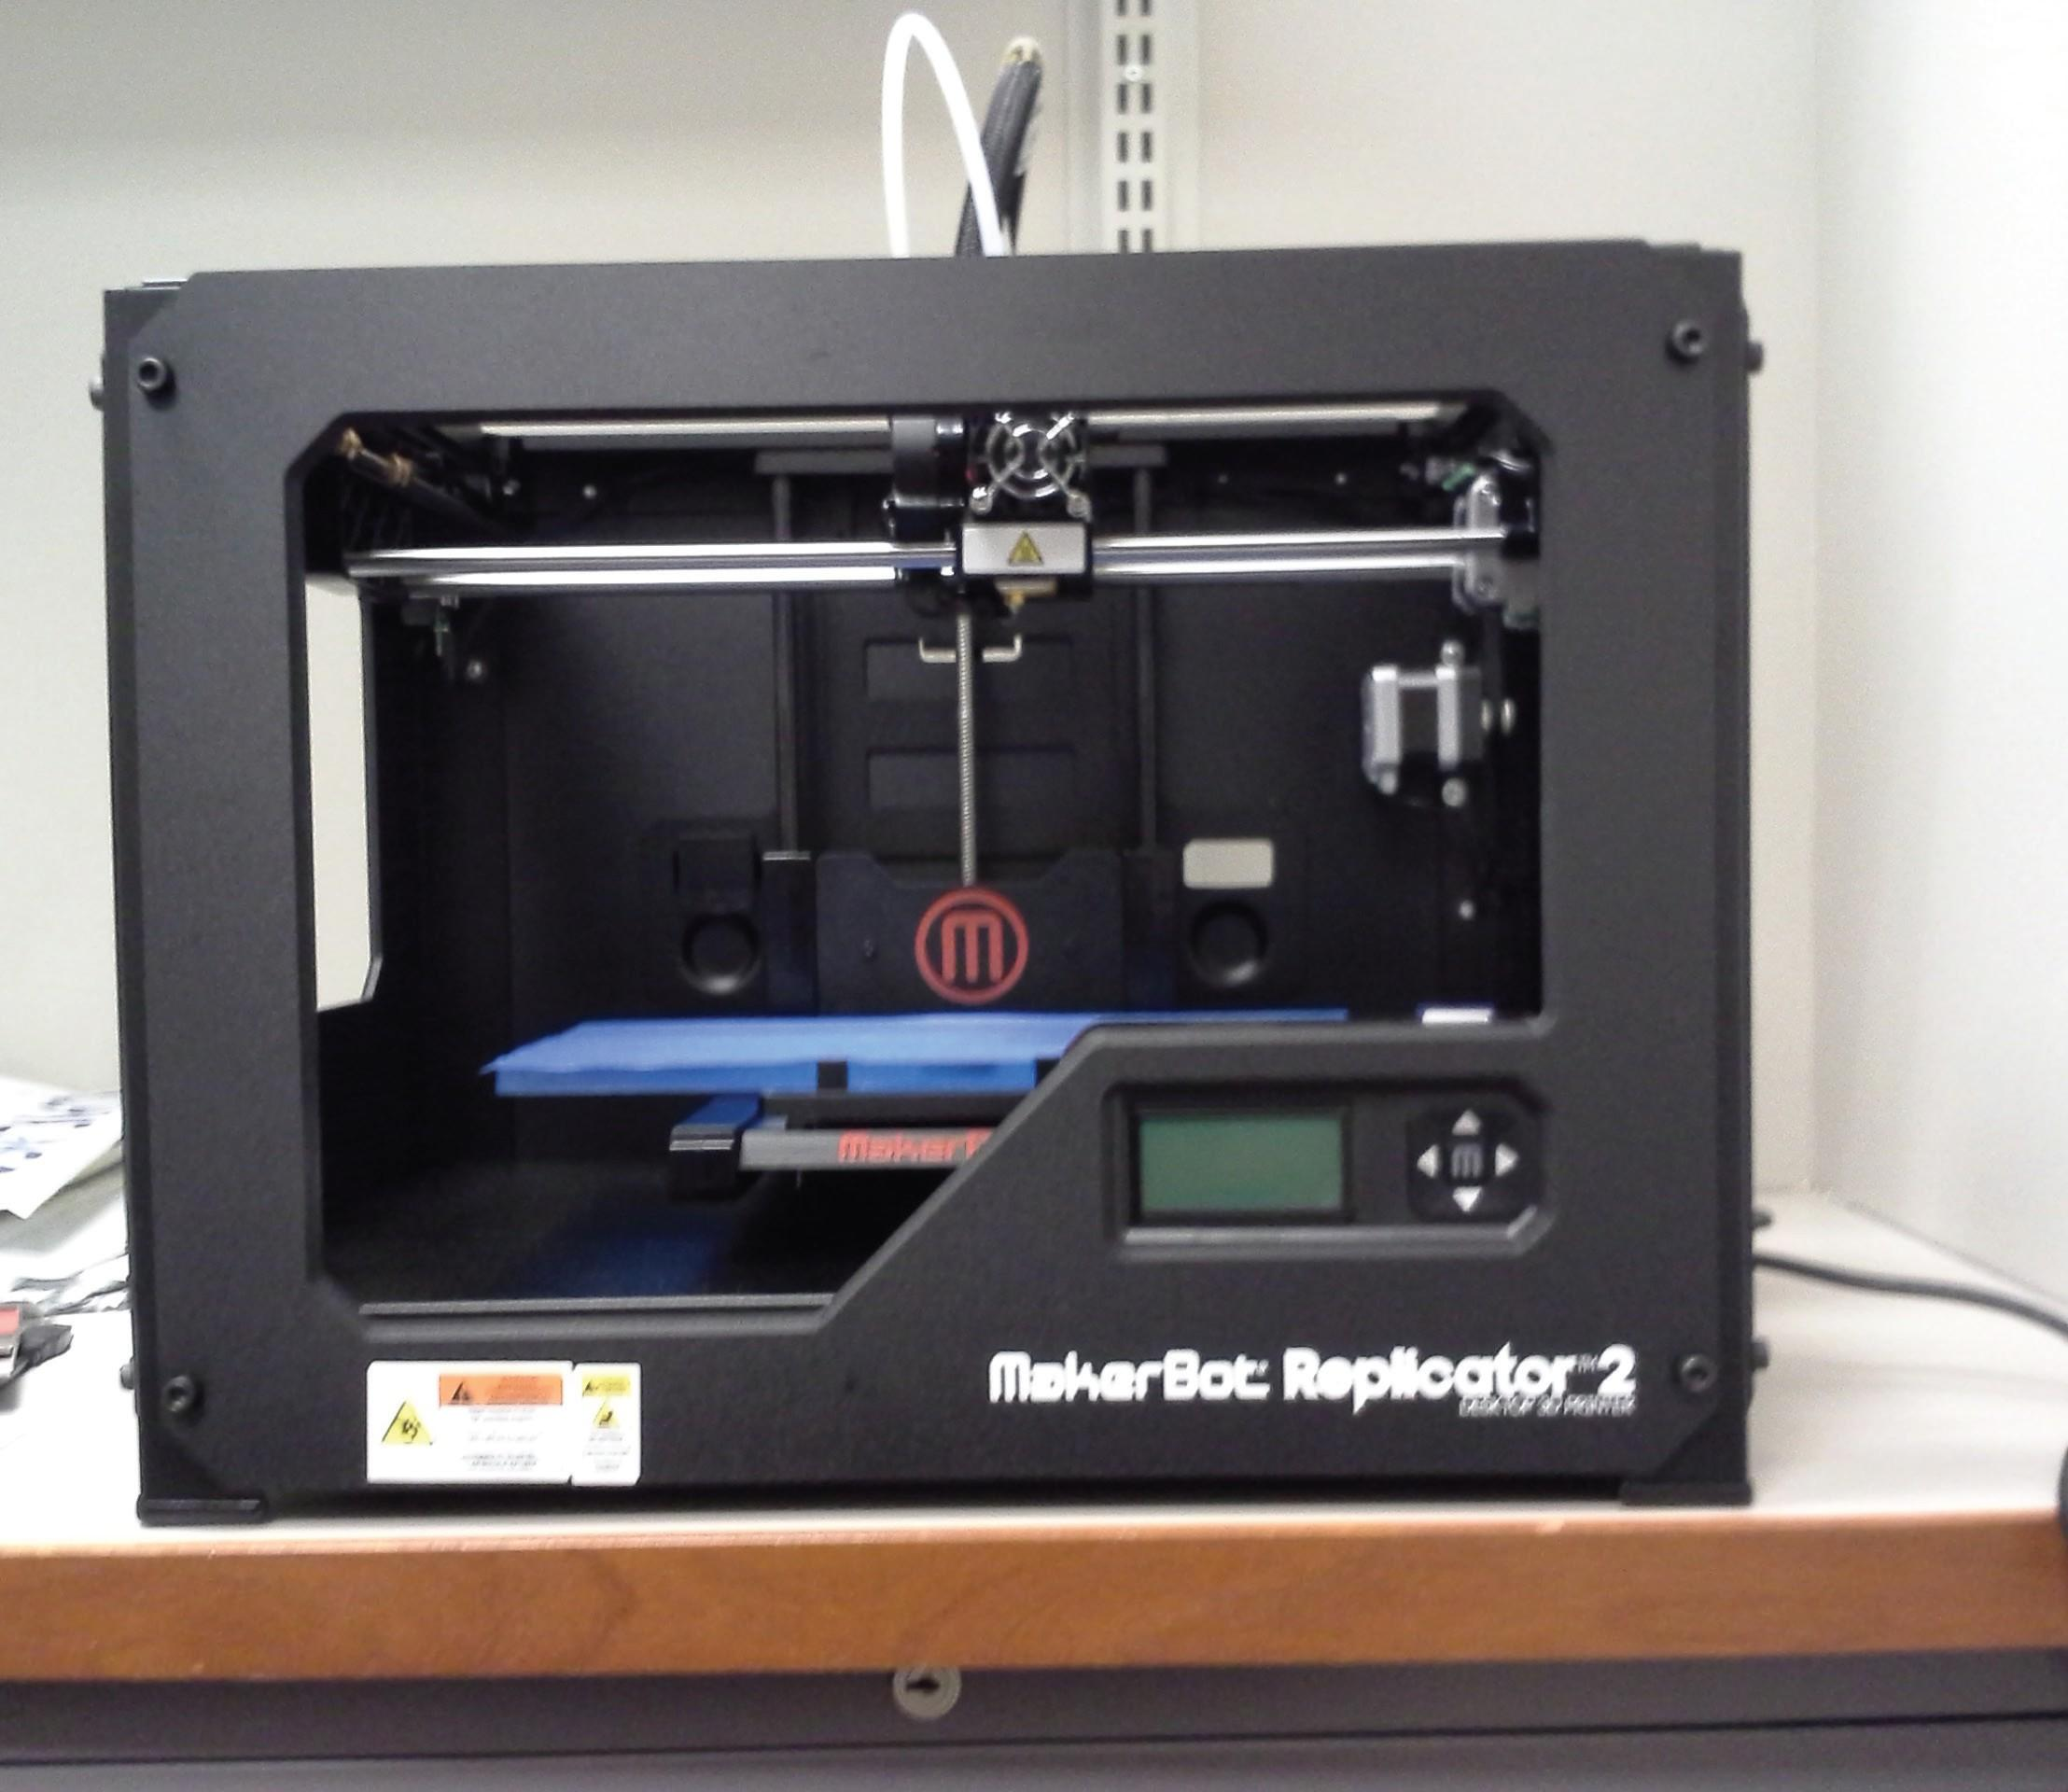 The Center for Creativity and Innovation at DePaul's business school purchased one of the !rst consumer models of a 3D printer currently available on the market. The printer costs $1200. (Photo courtesy of Lisa Gundry)